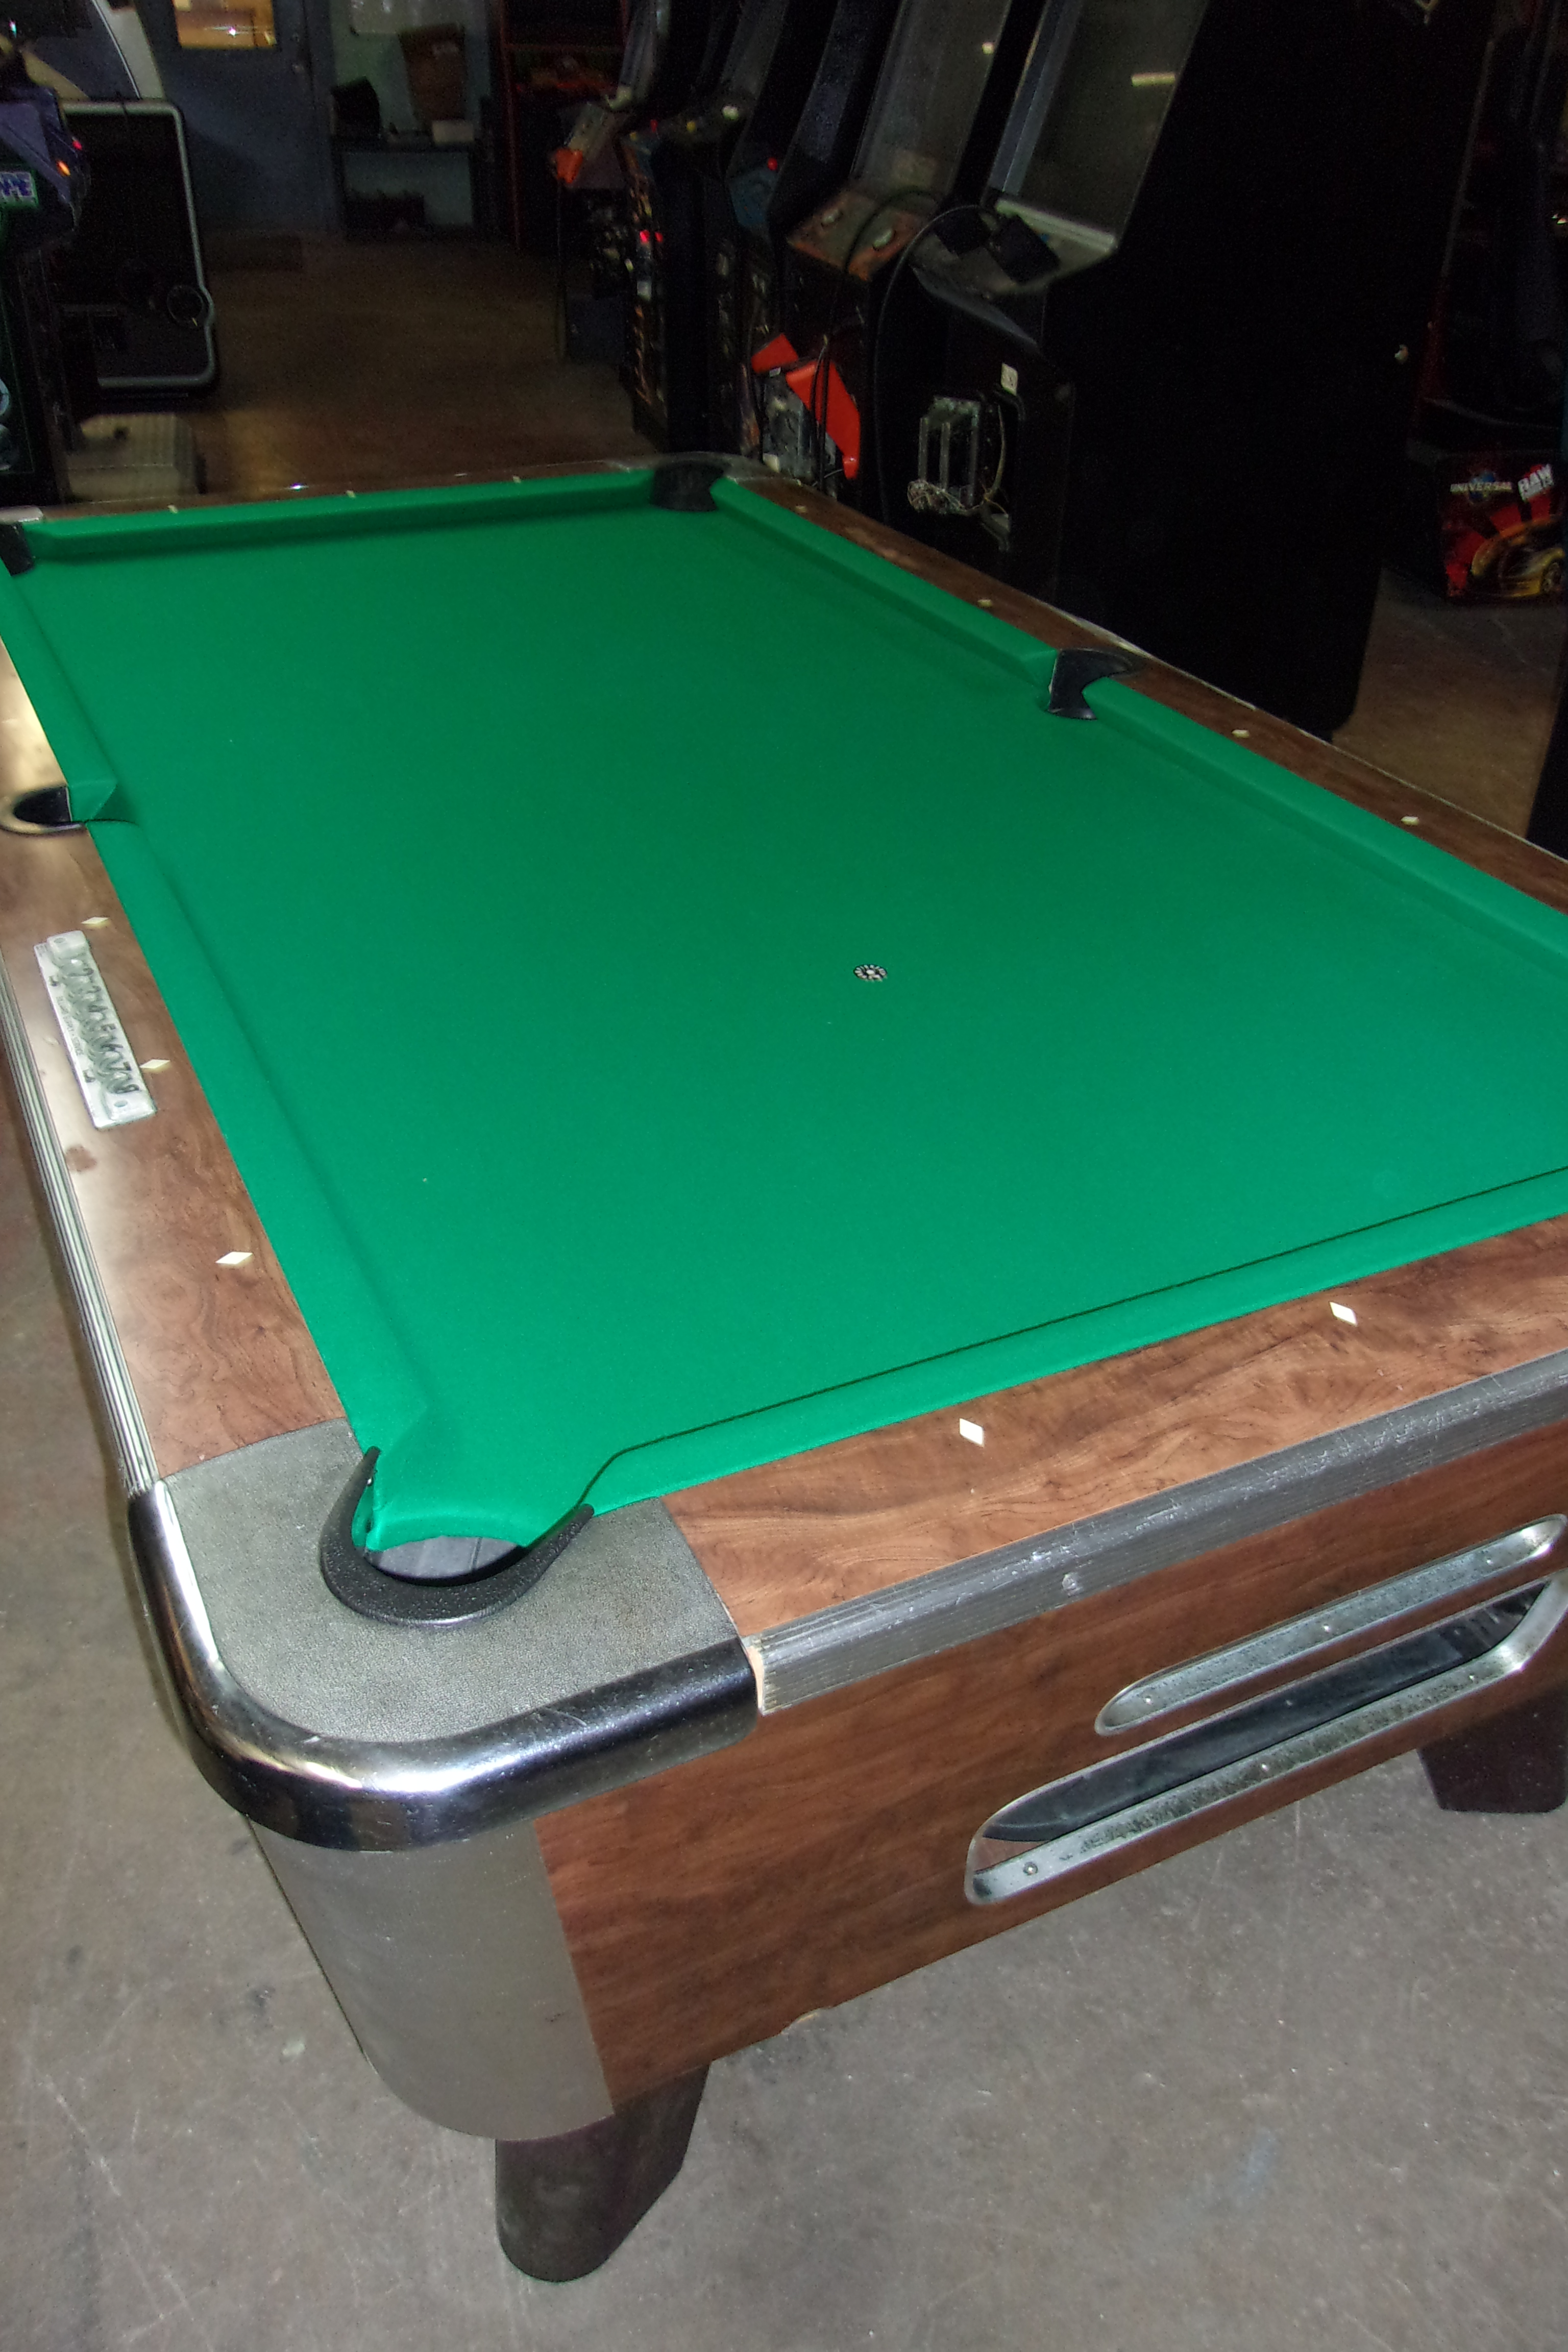 Coin Pool Table Size Marc Andreessen Bitcoin Blog - Coin operated pool table parts